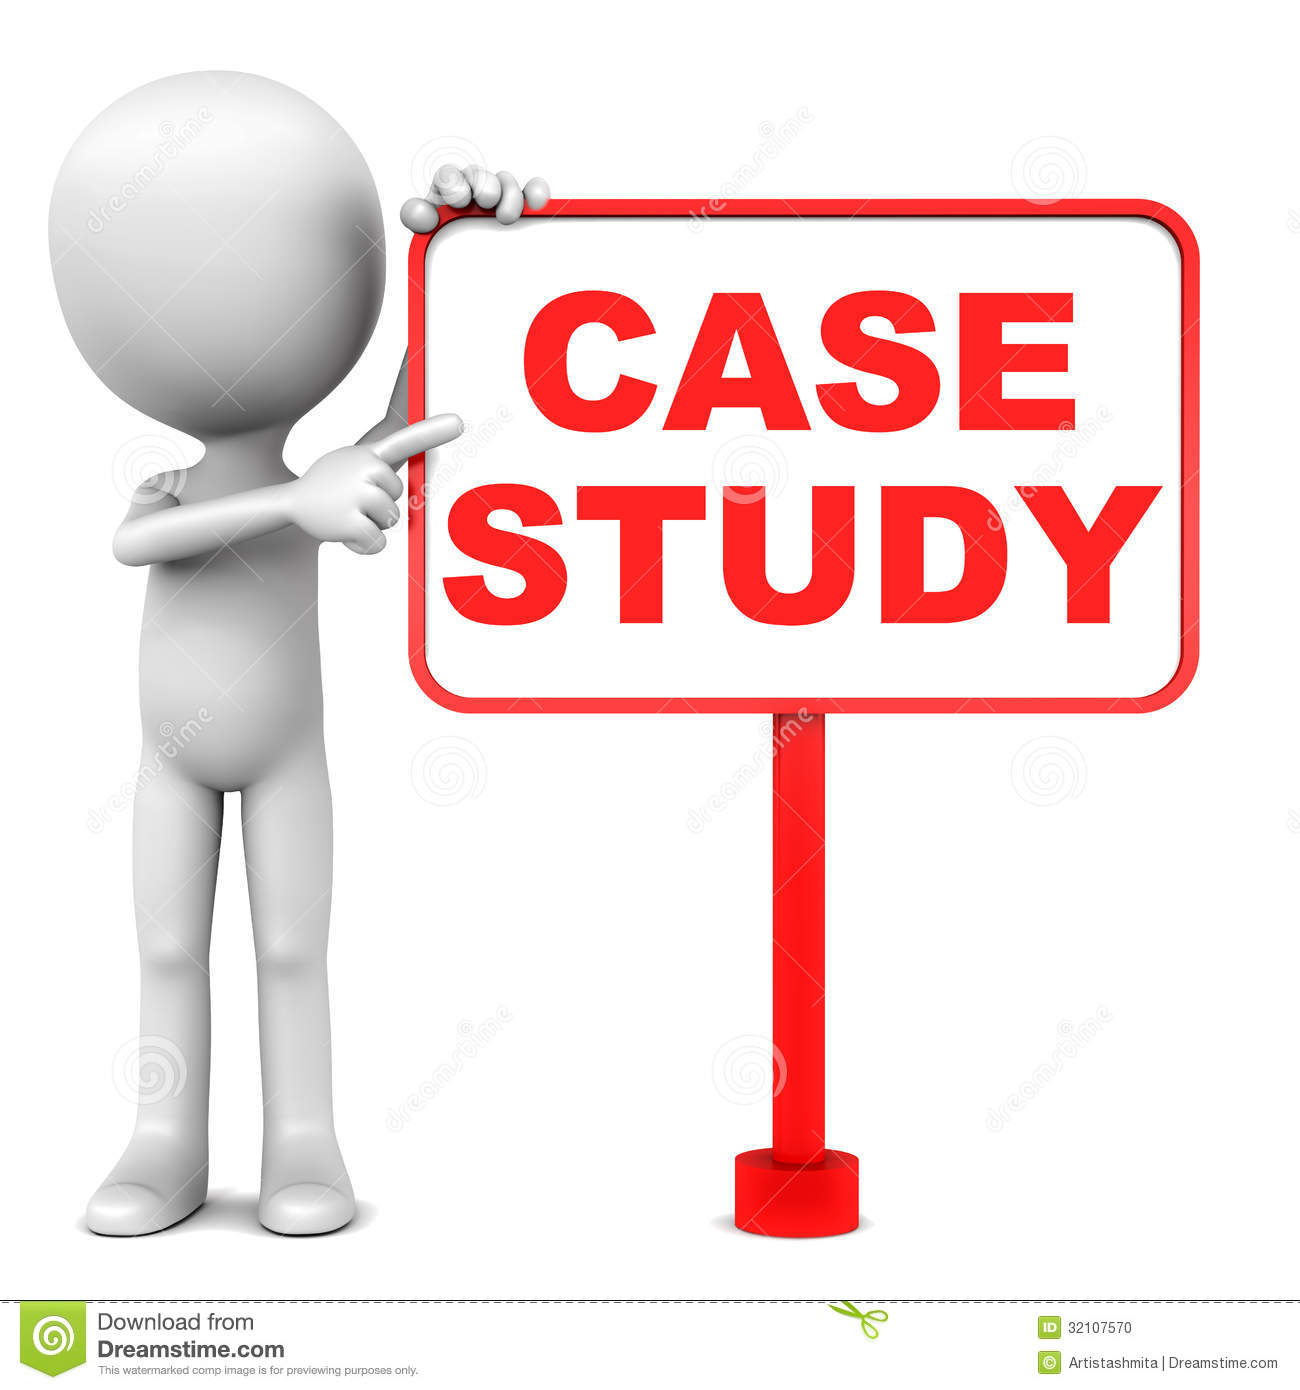 Case study clipart picture black and white library Case study clipart 5 » Clipart Station picture black and white library